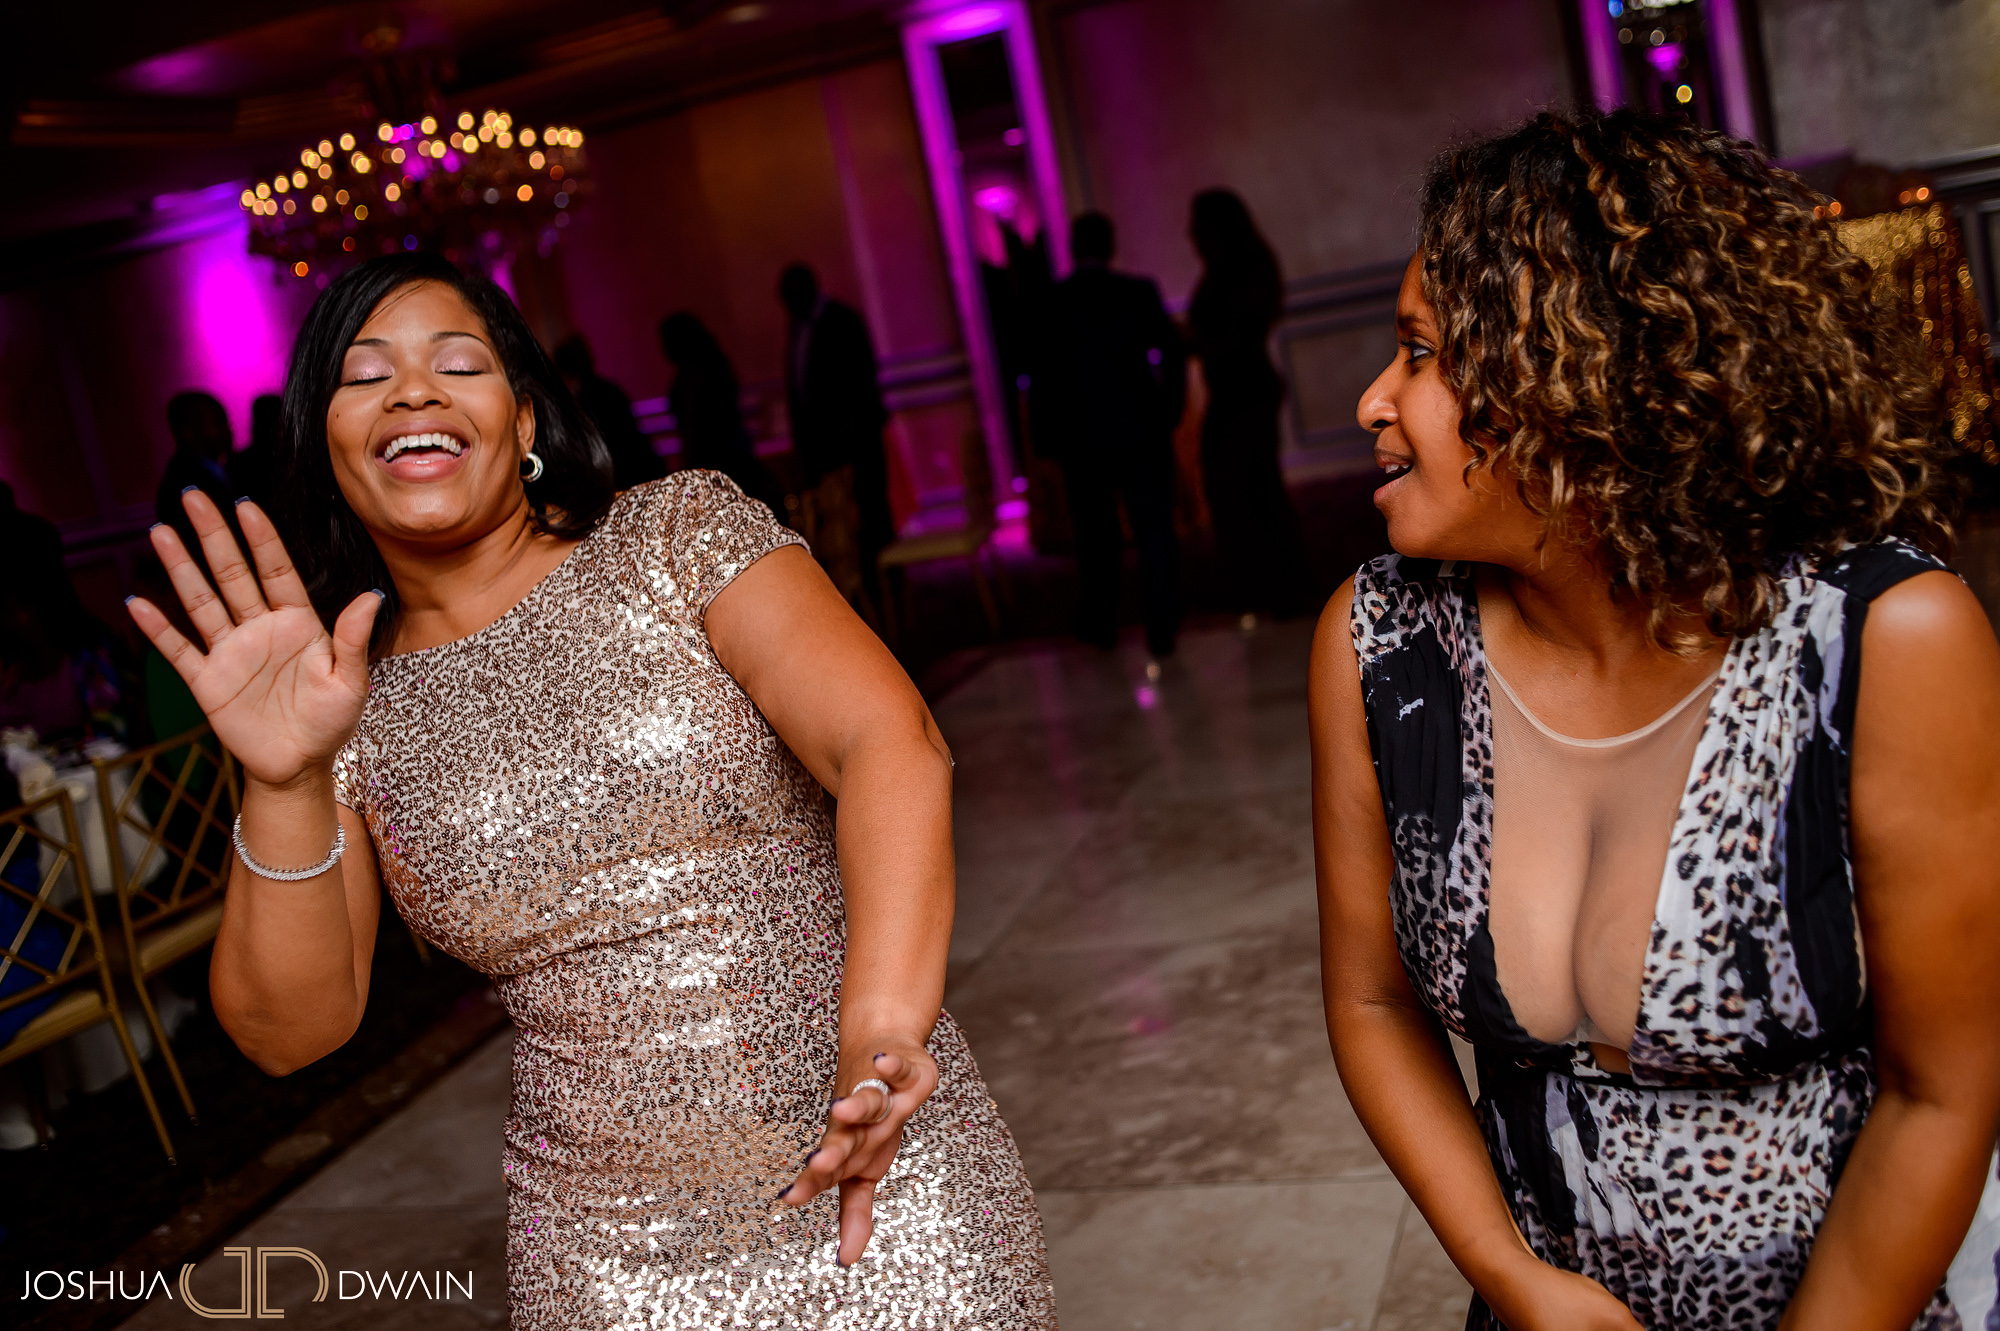 sandra-otwan-048-surf-club-new-rochelle-wedding-joshua-dwain-photos